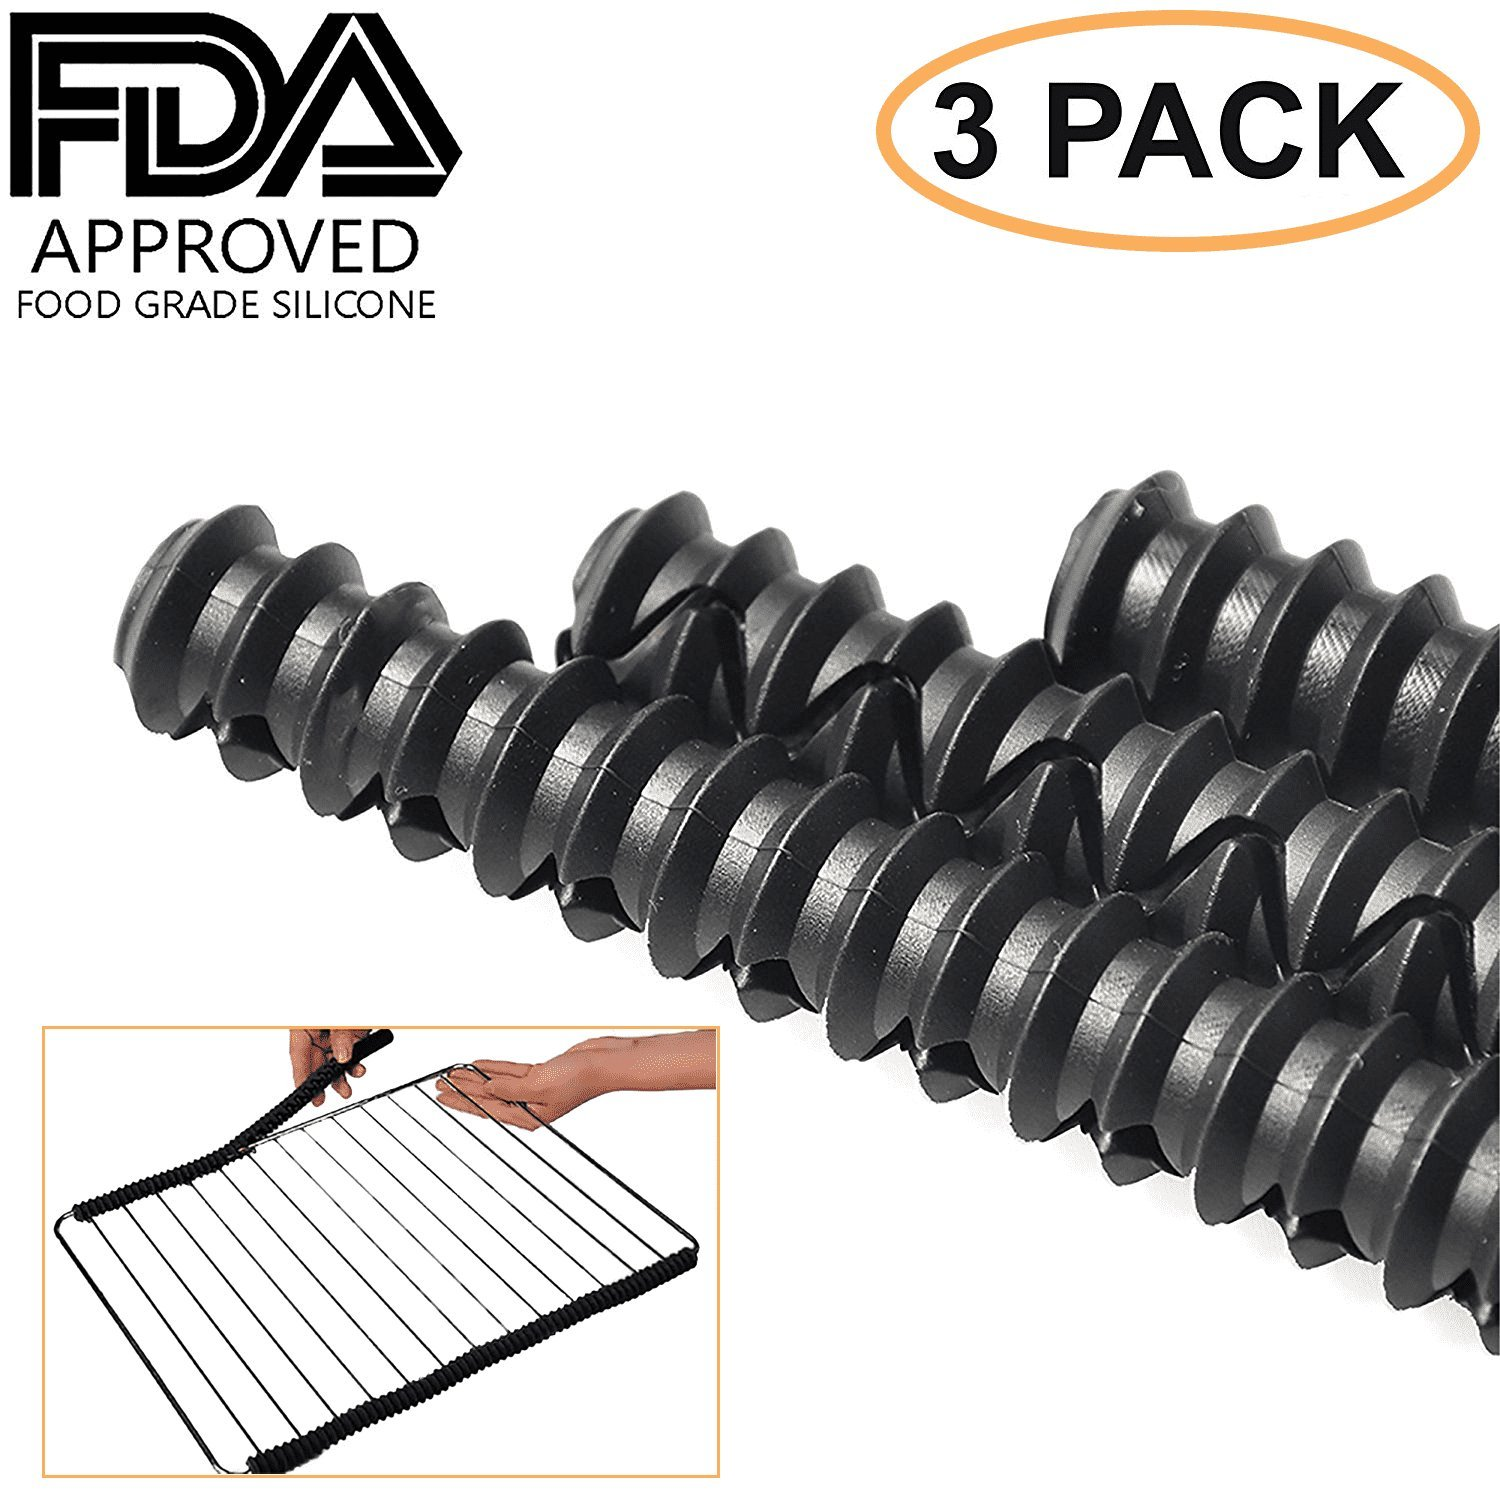 Kettio - Silicone Oven Rack Shield (Set of 3) - Certified BPA Free, FDA Approved, heat resistant silicone - protects against burns and scars - Black